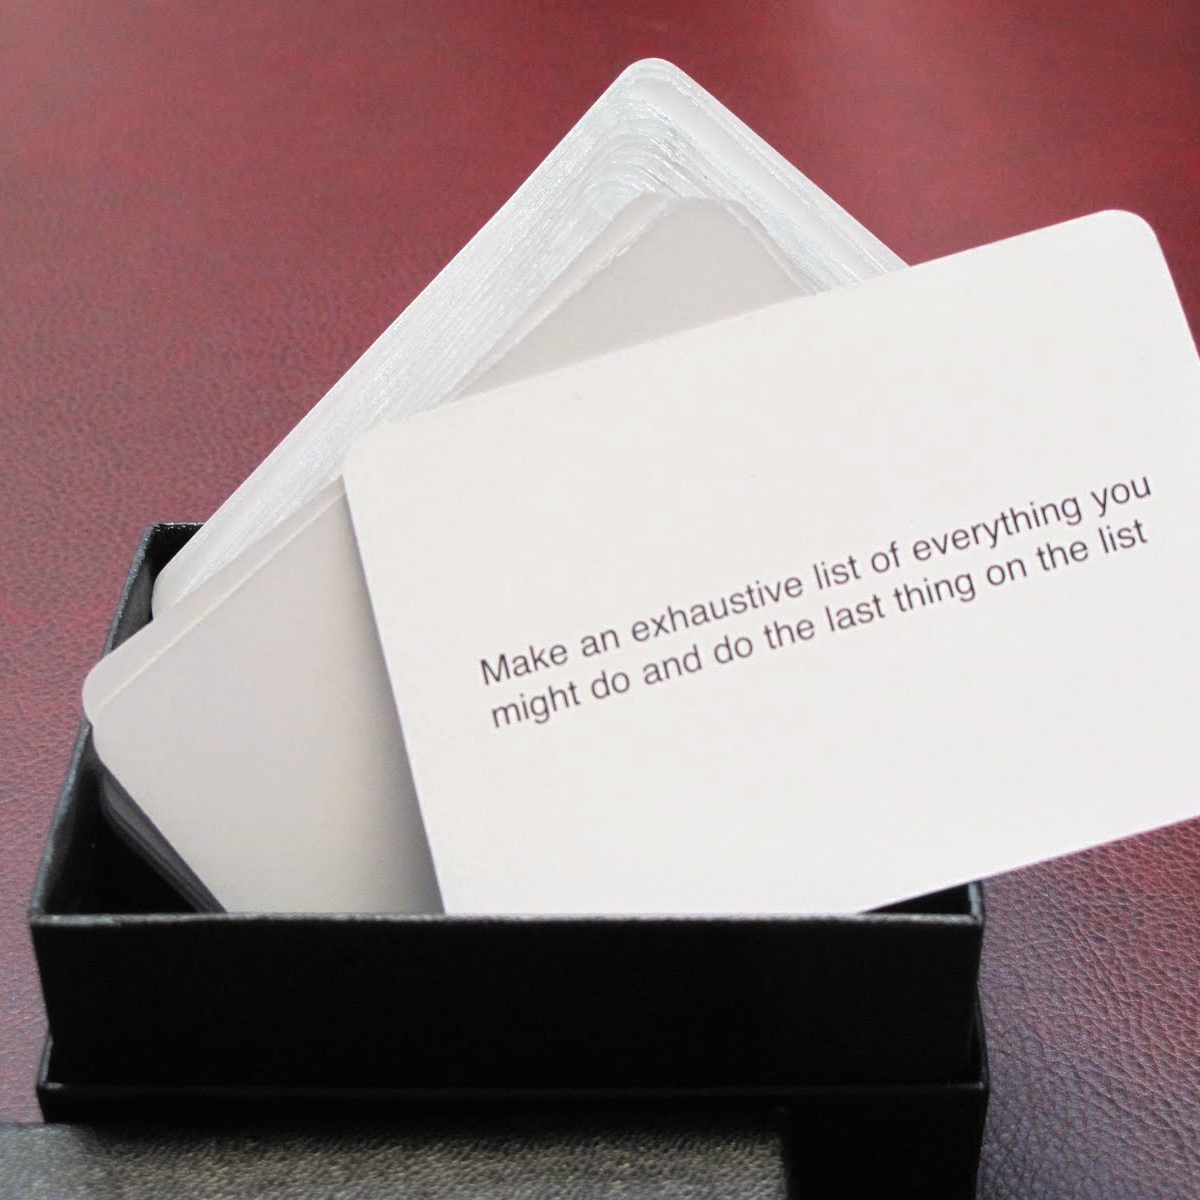 Oblique Strategies